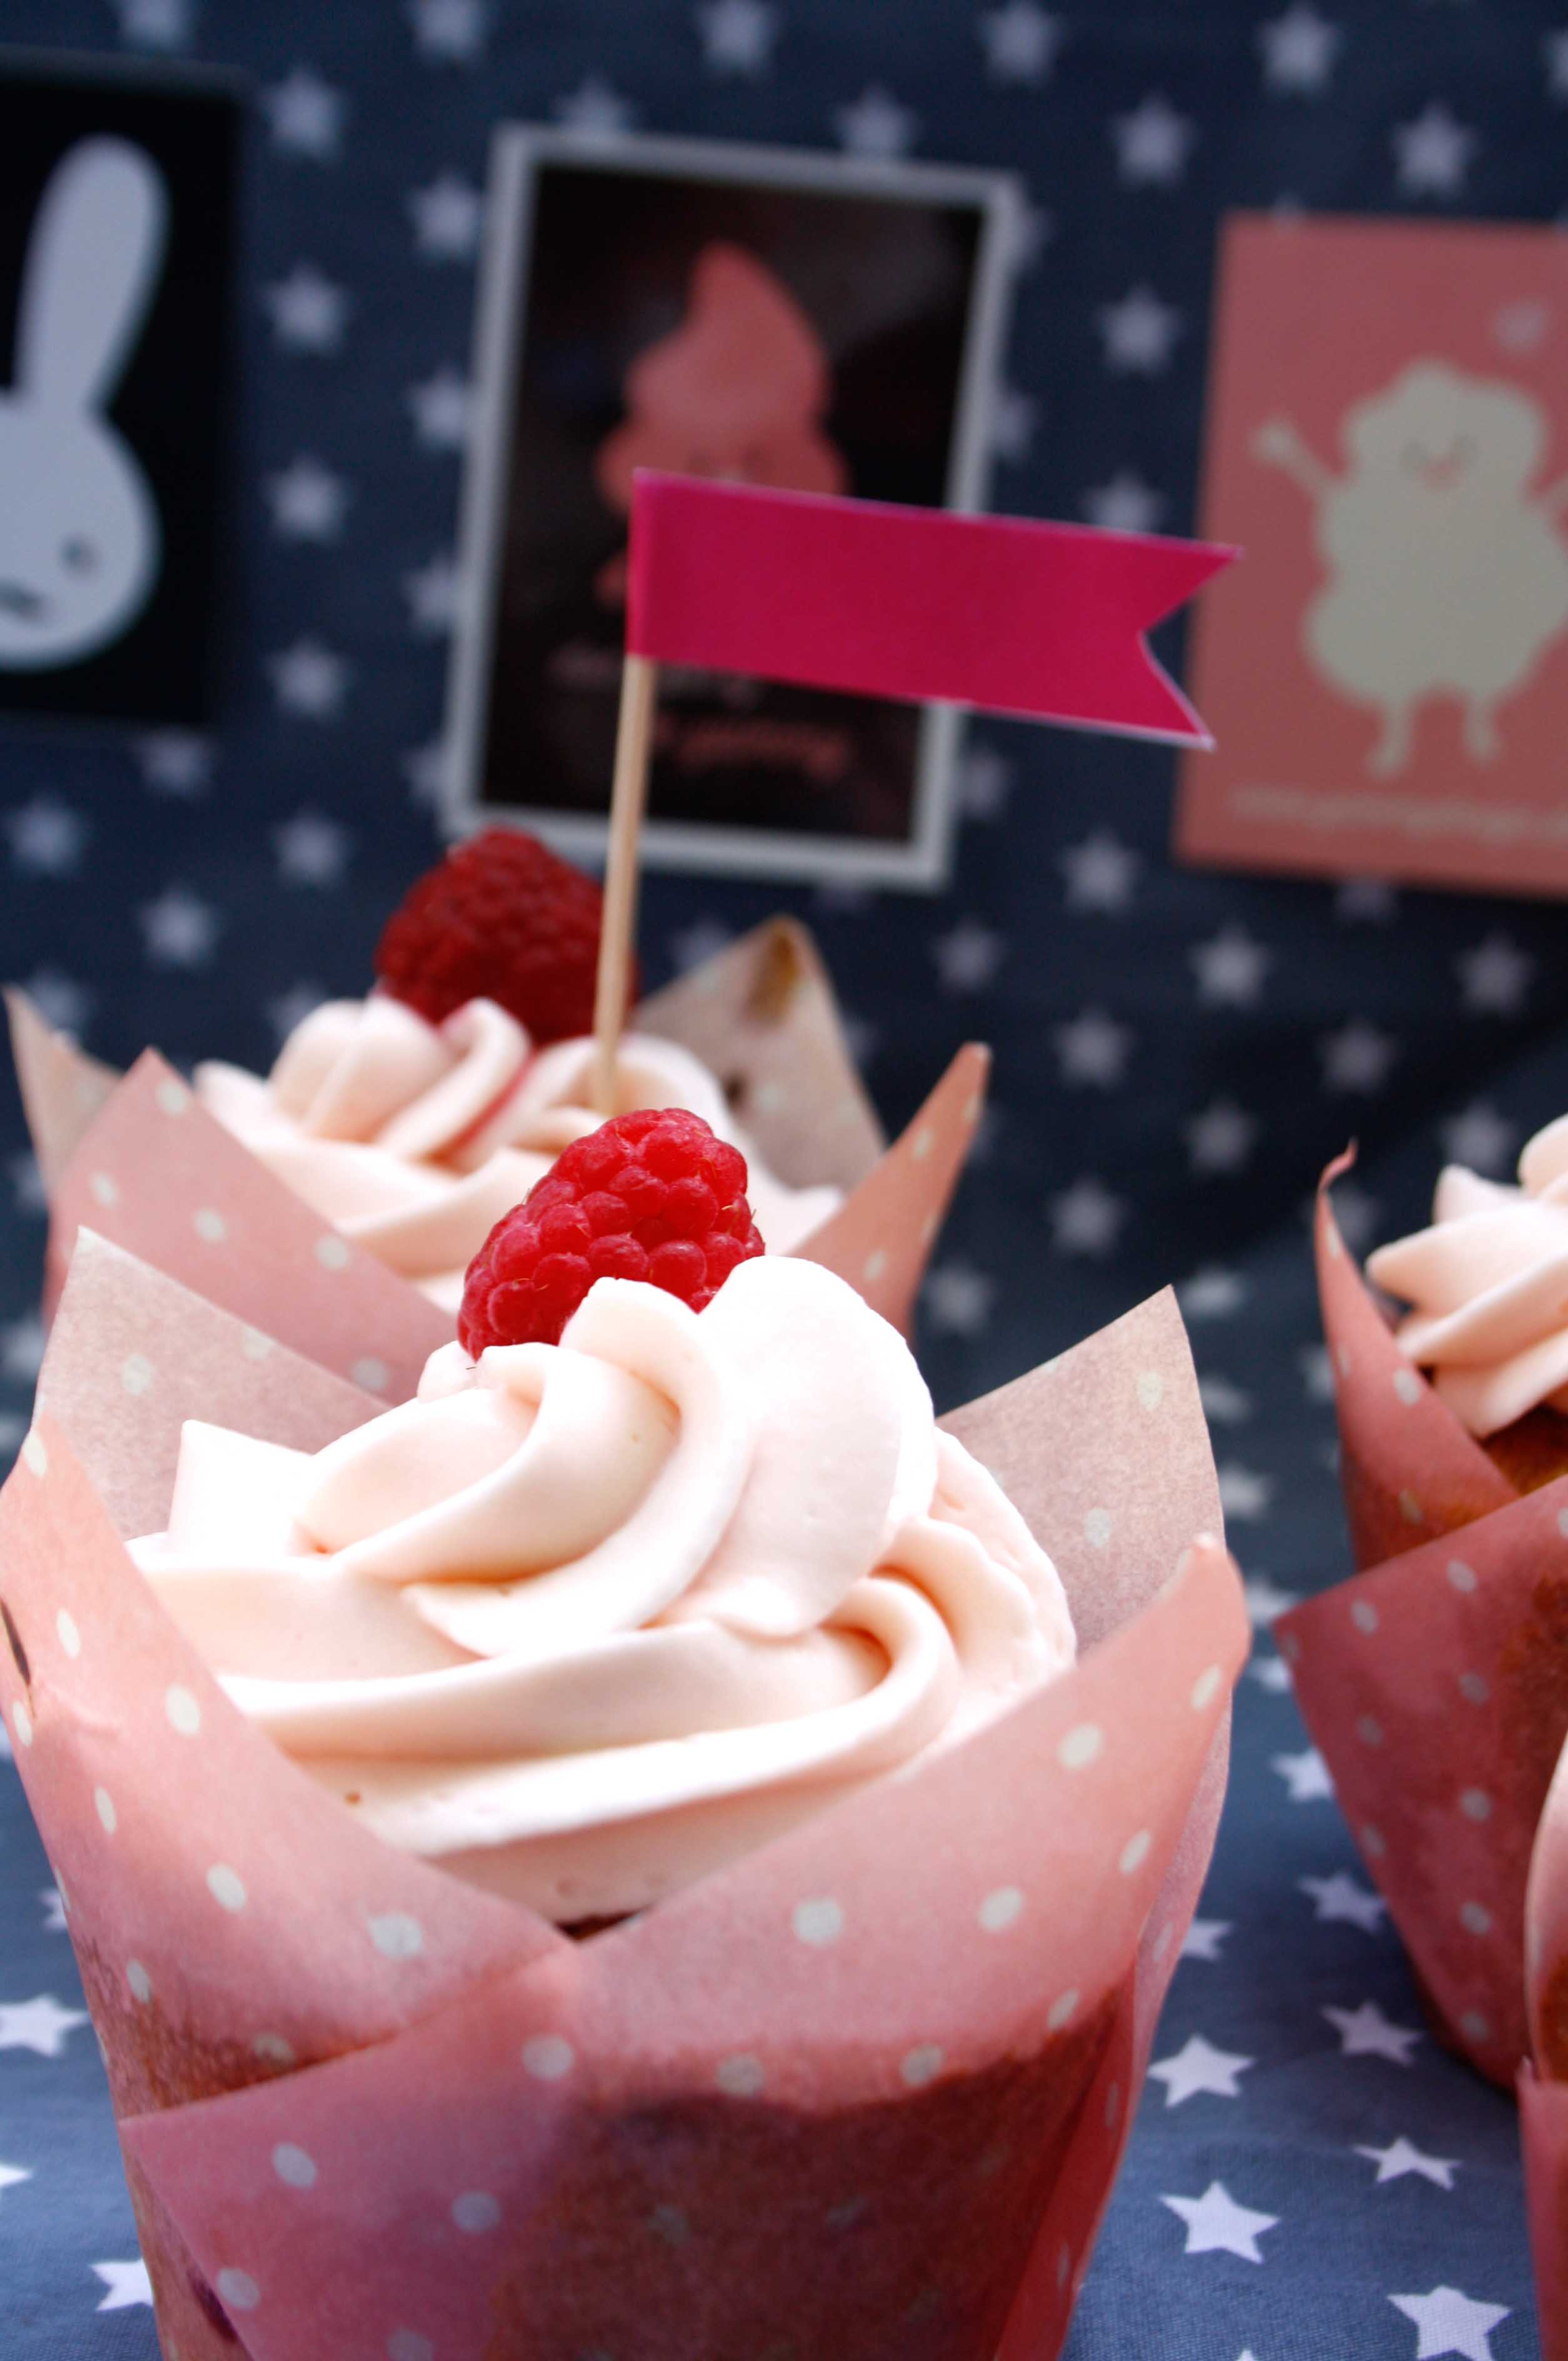 Himbeer Cupcakes // Raspberry Cupcakes by http://babyrockmyday.com/himbeer-cupcakes/